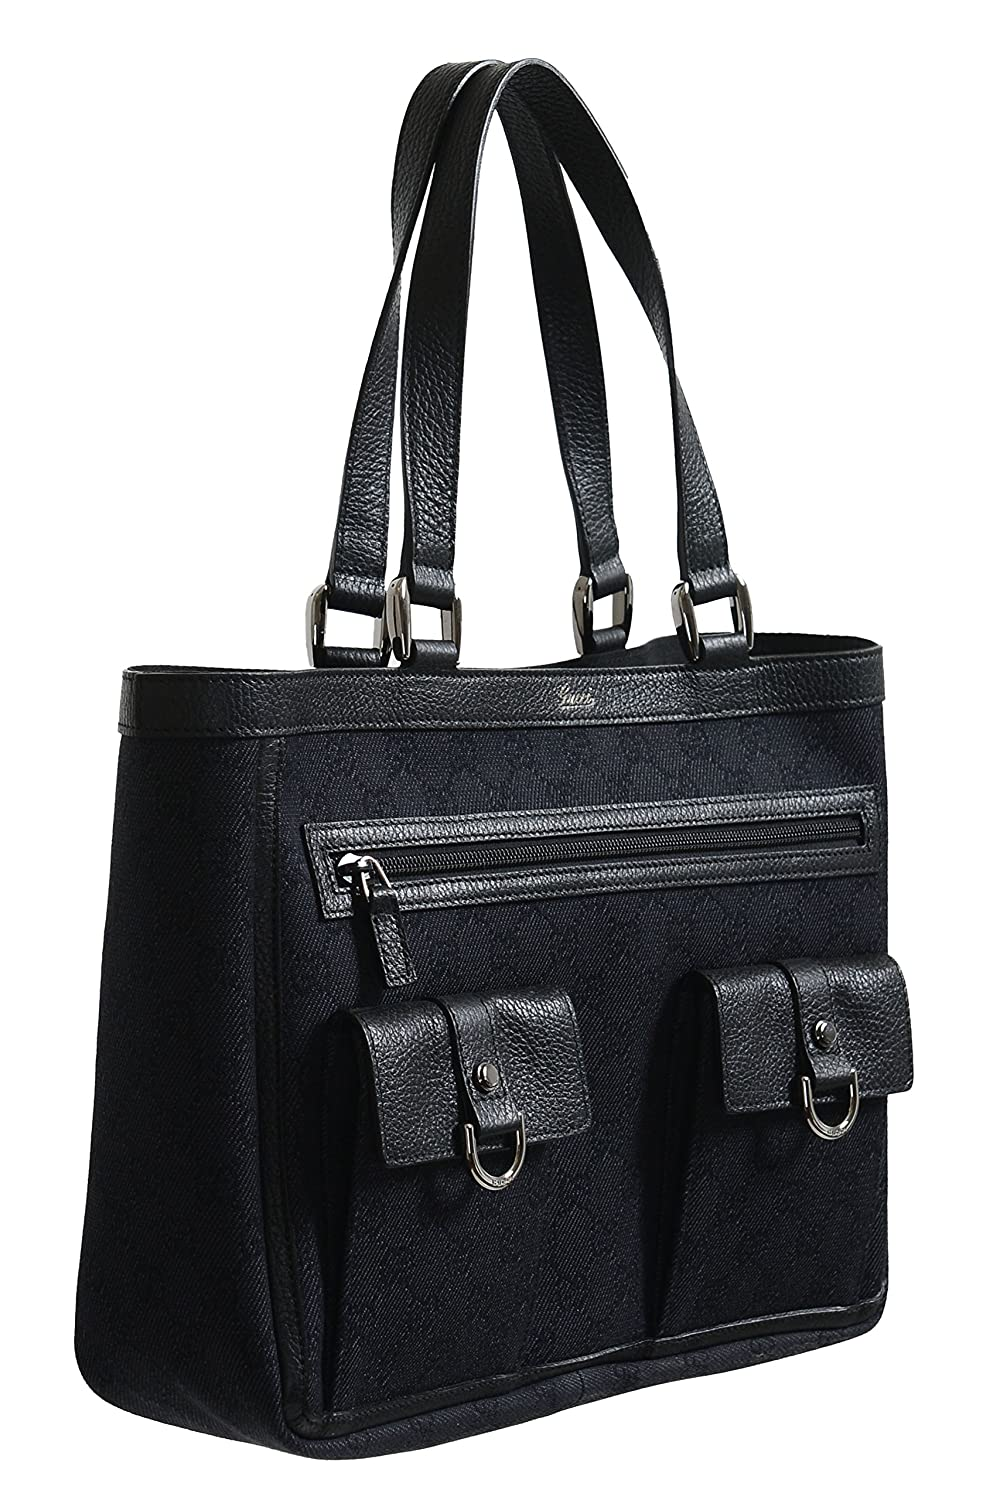 852446d92cb Amazon.com  Gucci Women s Black GG Print Canvas Leather Trimmed Abbey  Pocket Tote Bag  Clothing